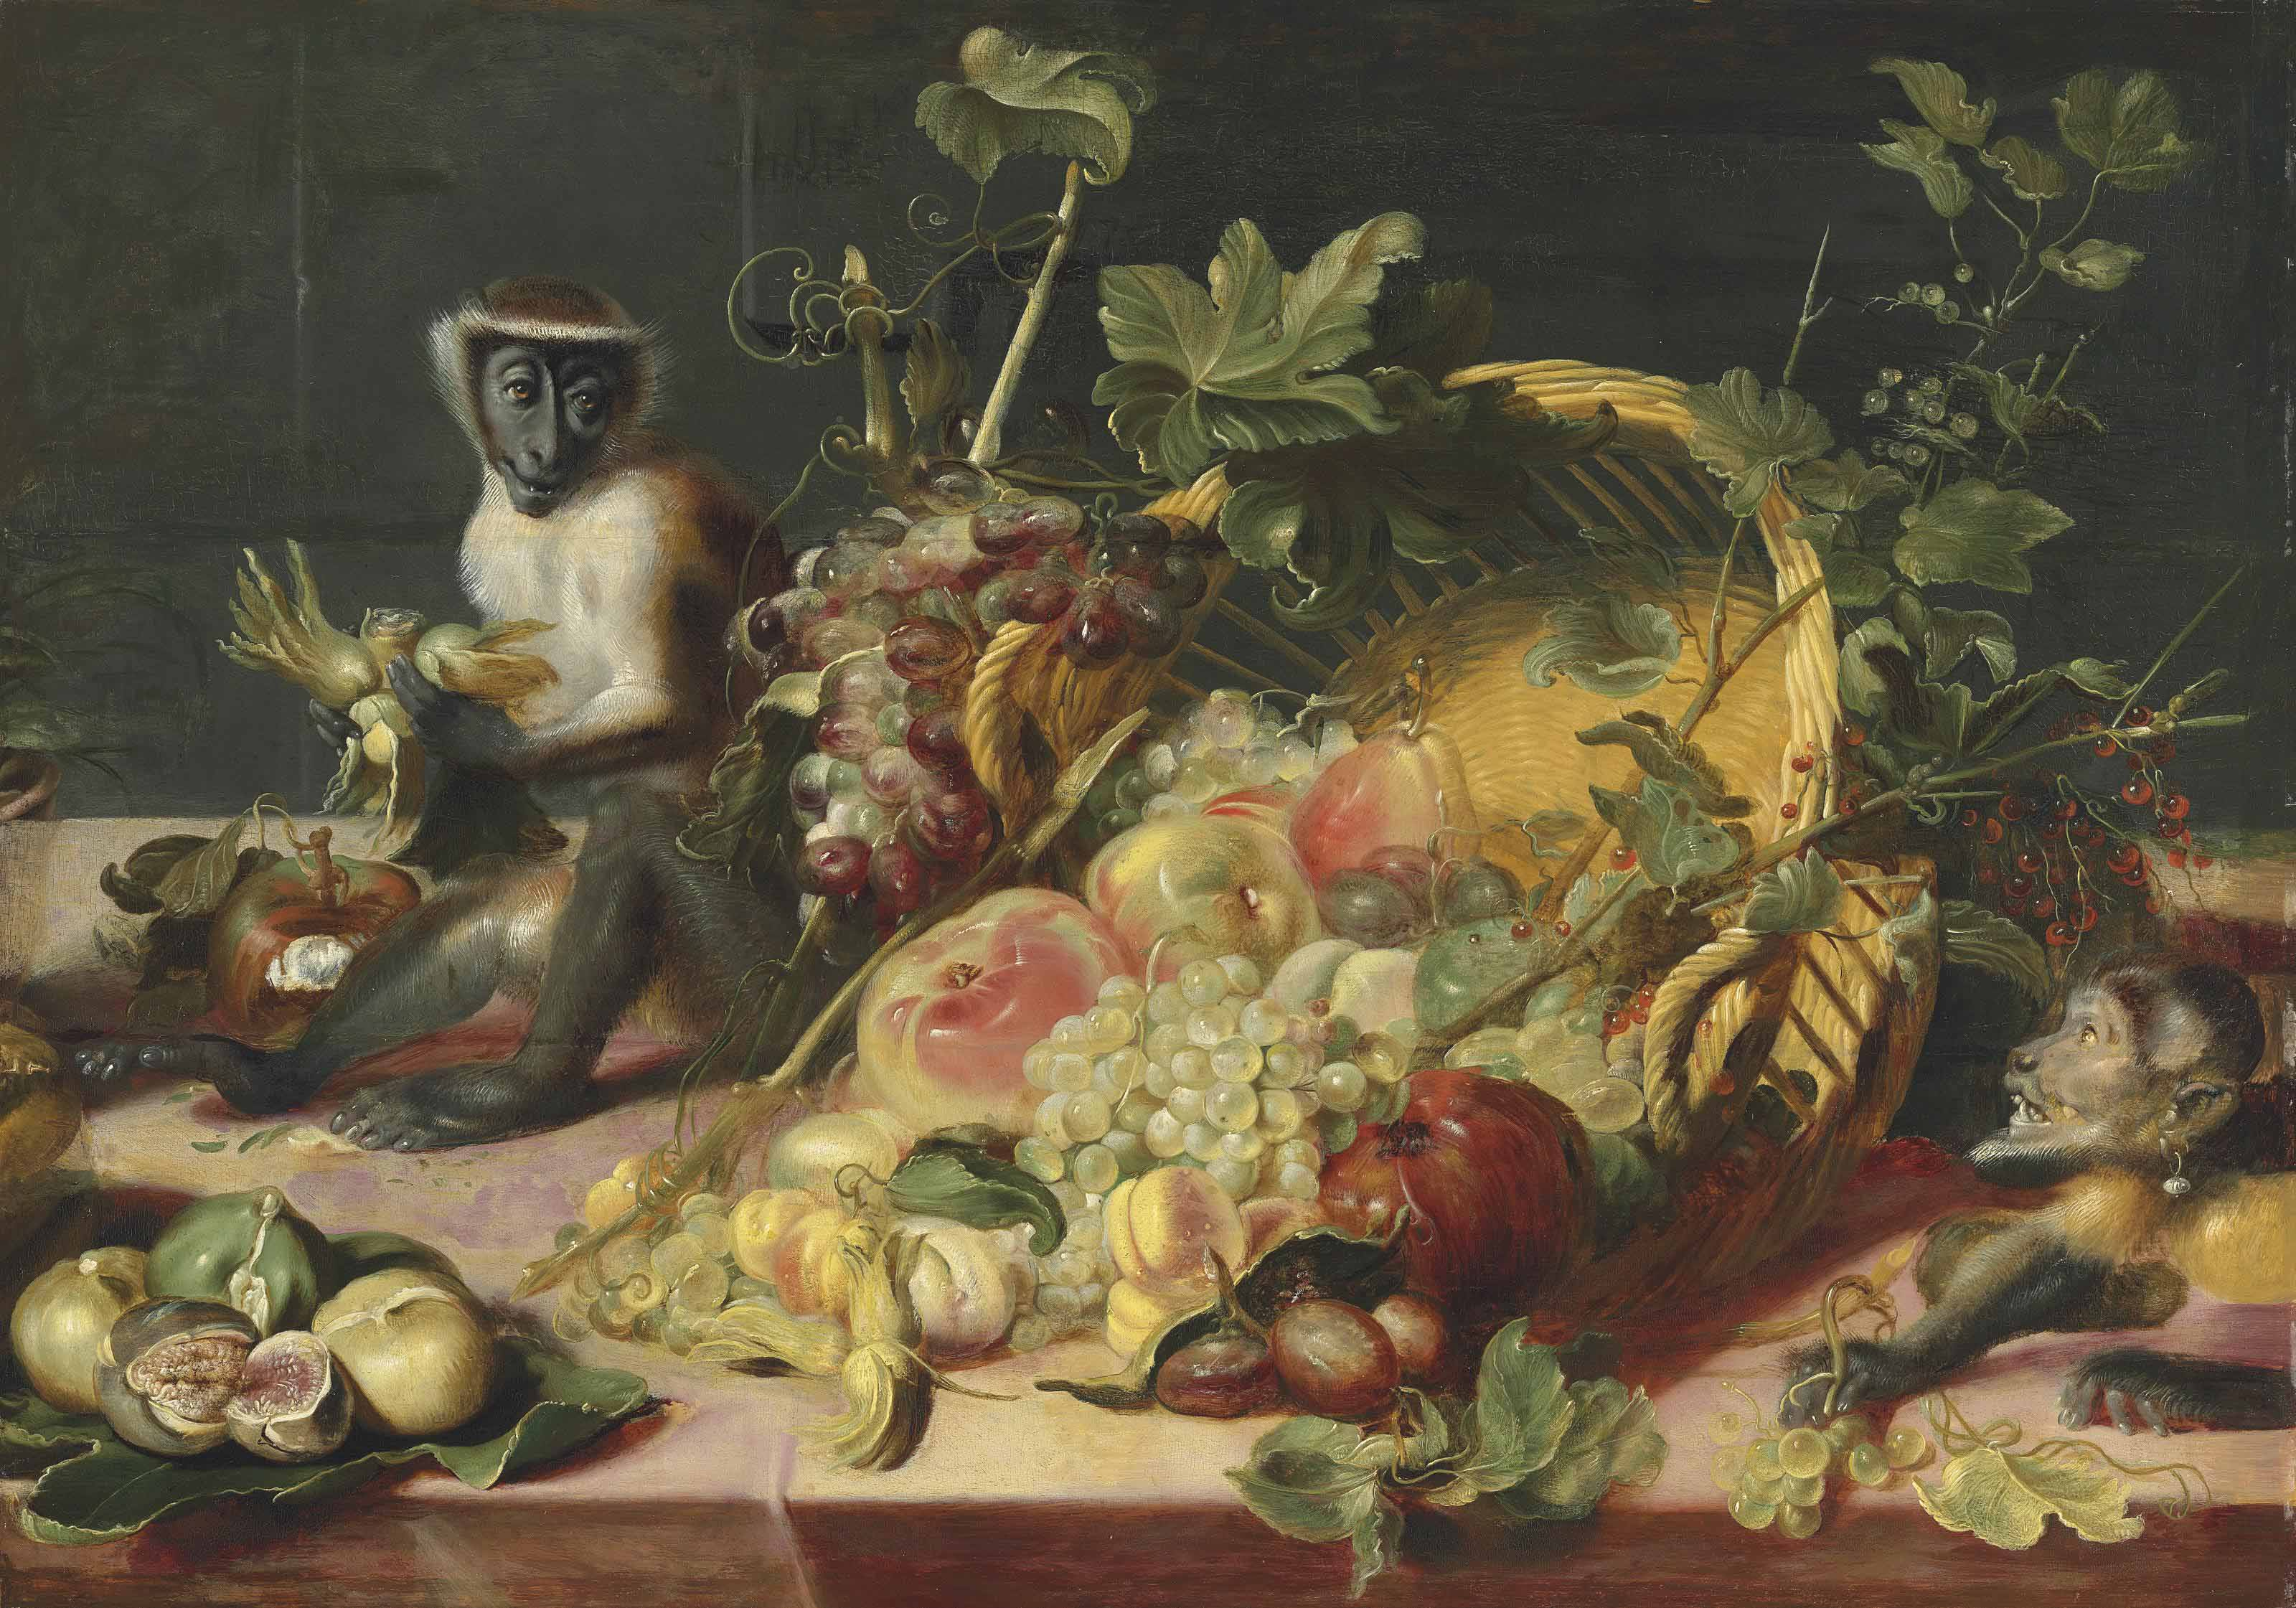 Apples, grapes, a pomegranate, figs and other fruit spilled from an overturned basked, with a monkey with a hazelnut and another with grapes on a draped table